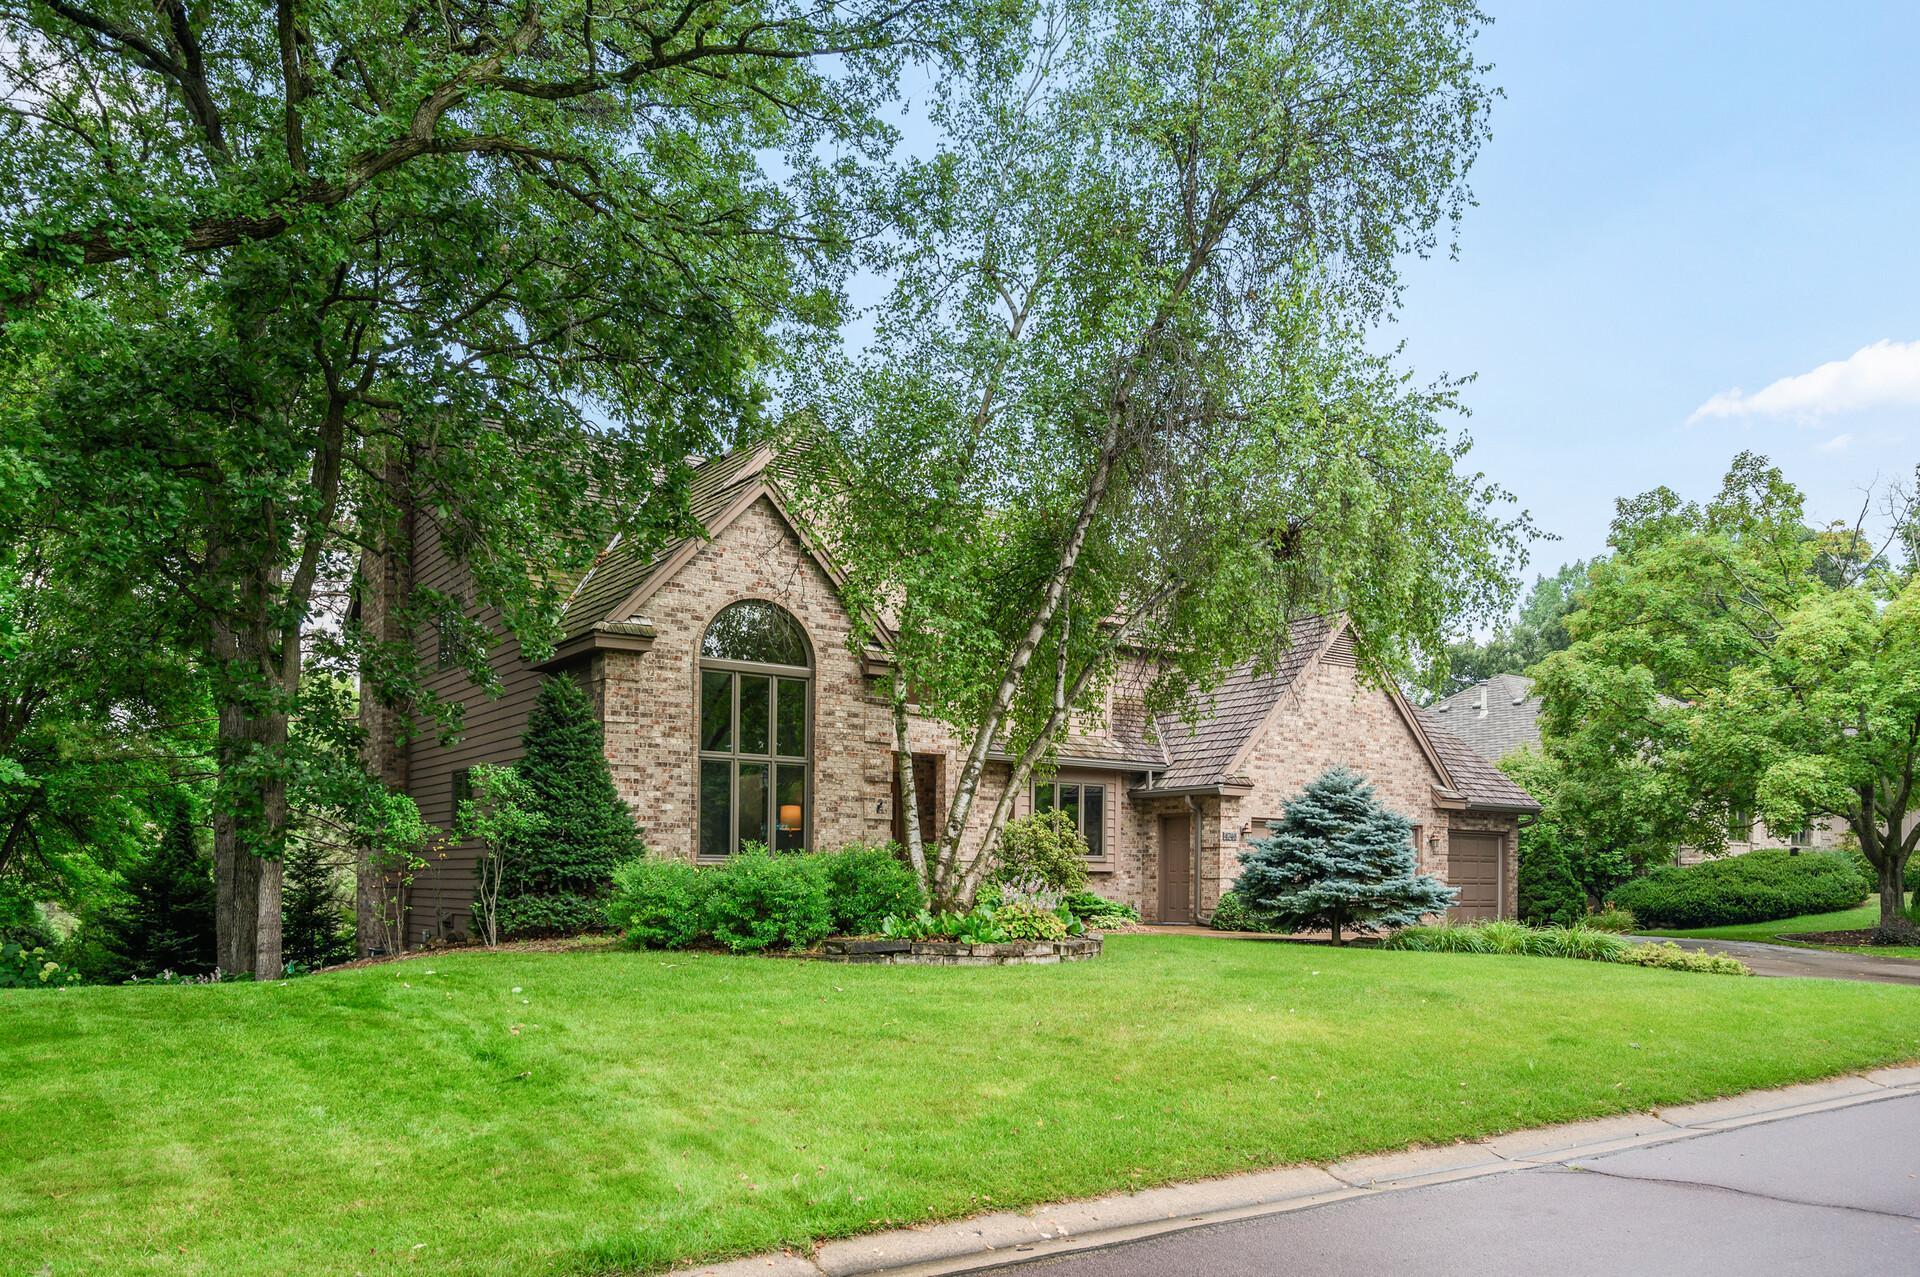 Photo of 4746 137th Street W, Apple Valley, MN 55124